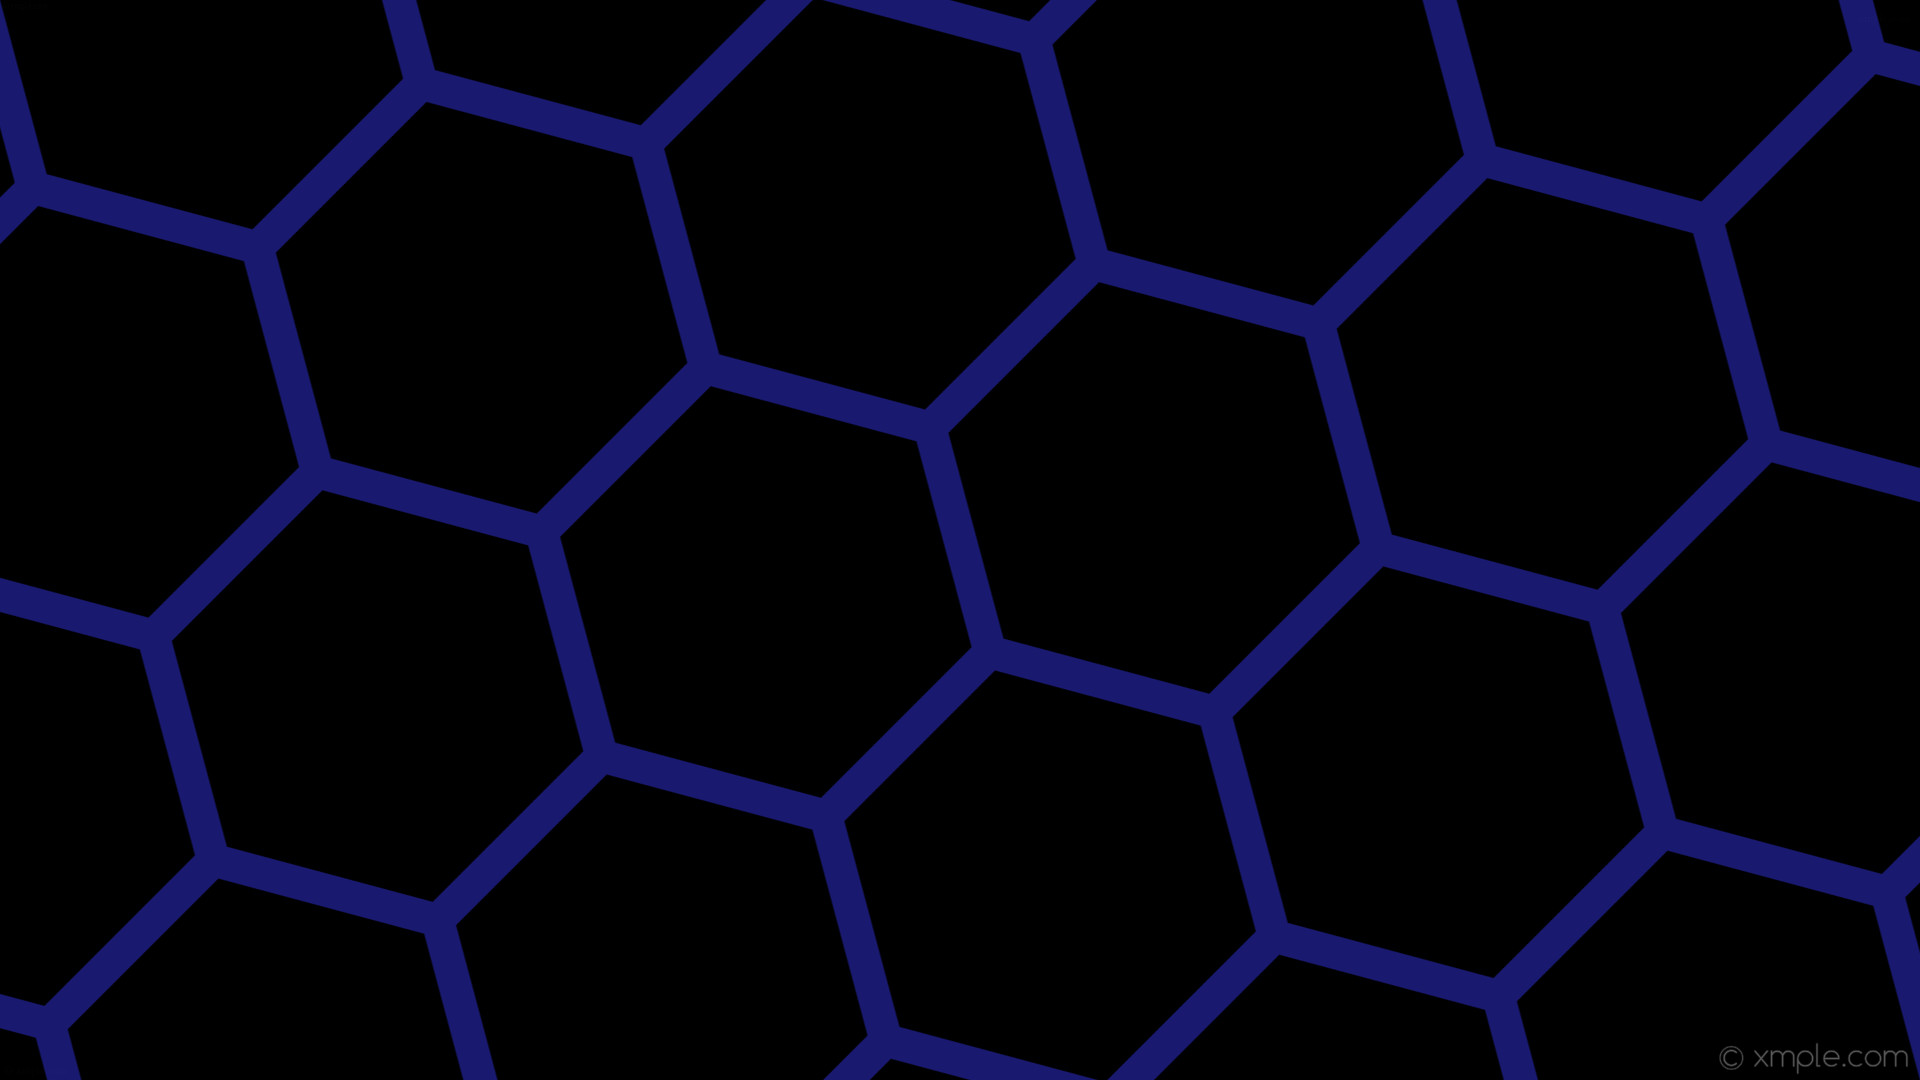 Res: 1920x1080, wallpaper honeycomb black blue hexagon beehive midnight blue #000000  #191970 diagonal 15° 33px